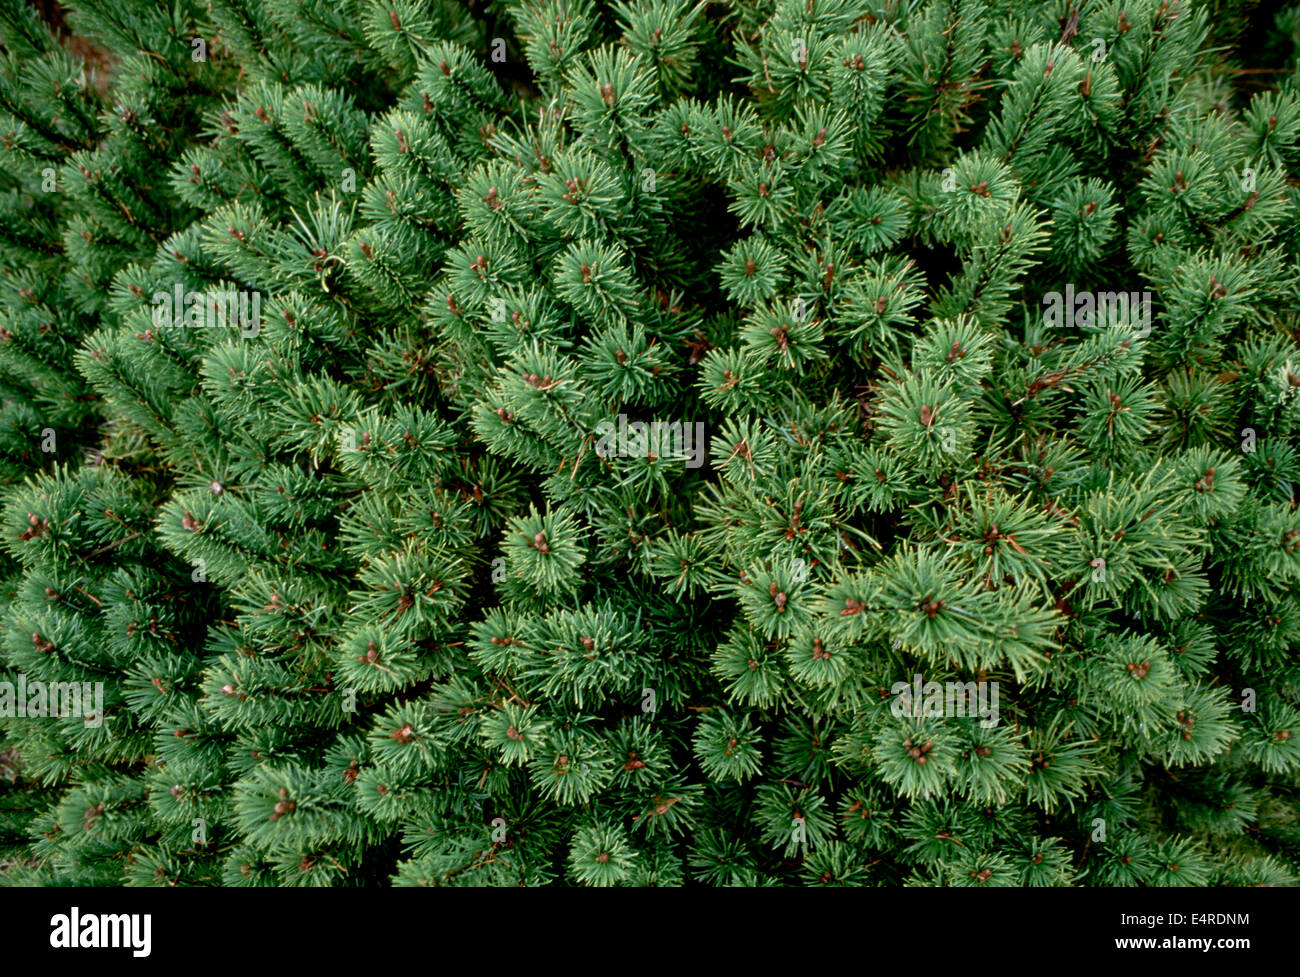 Branch ends of the Pacific Northwest spruce - Stock Image